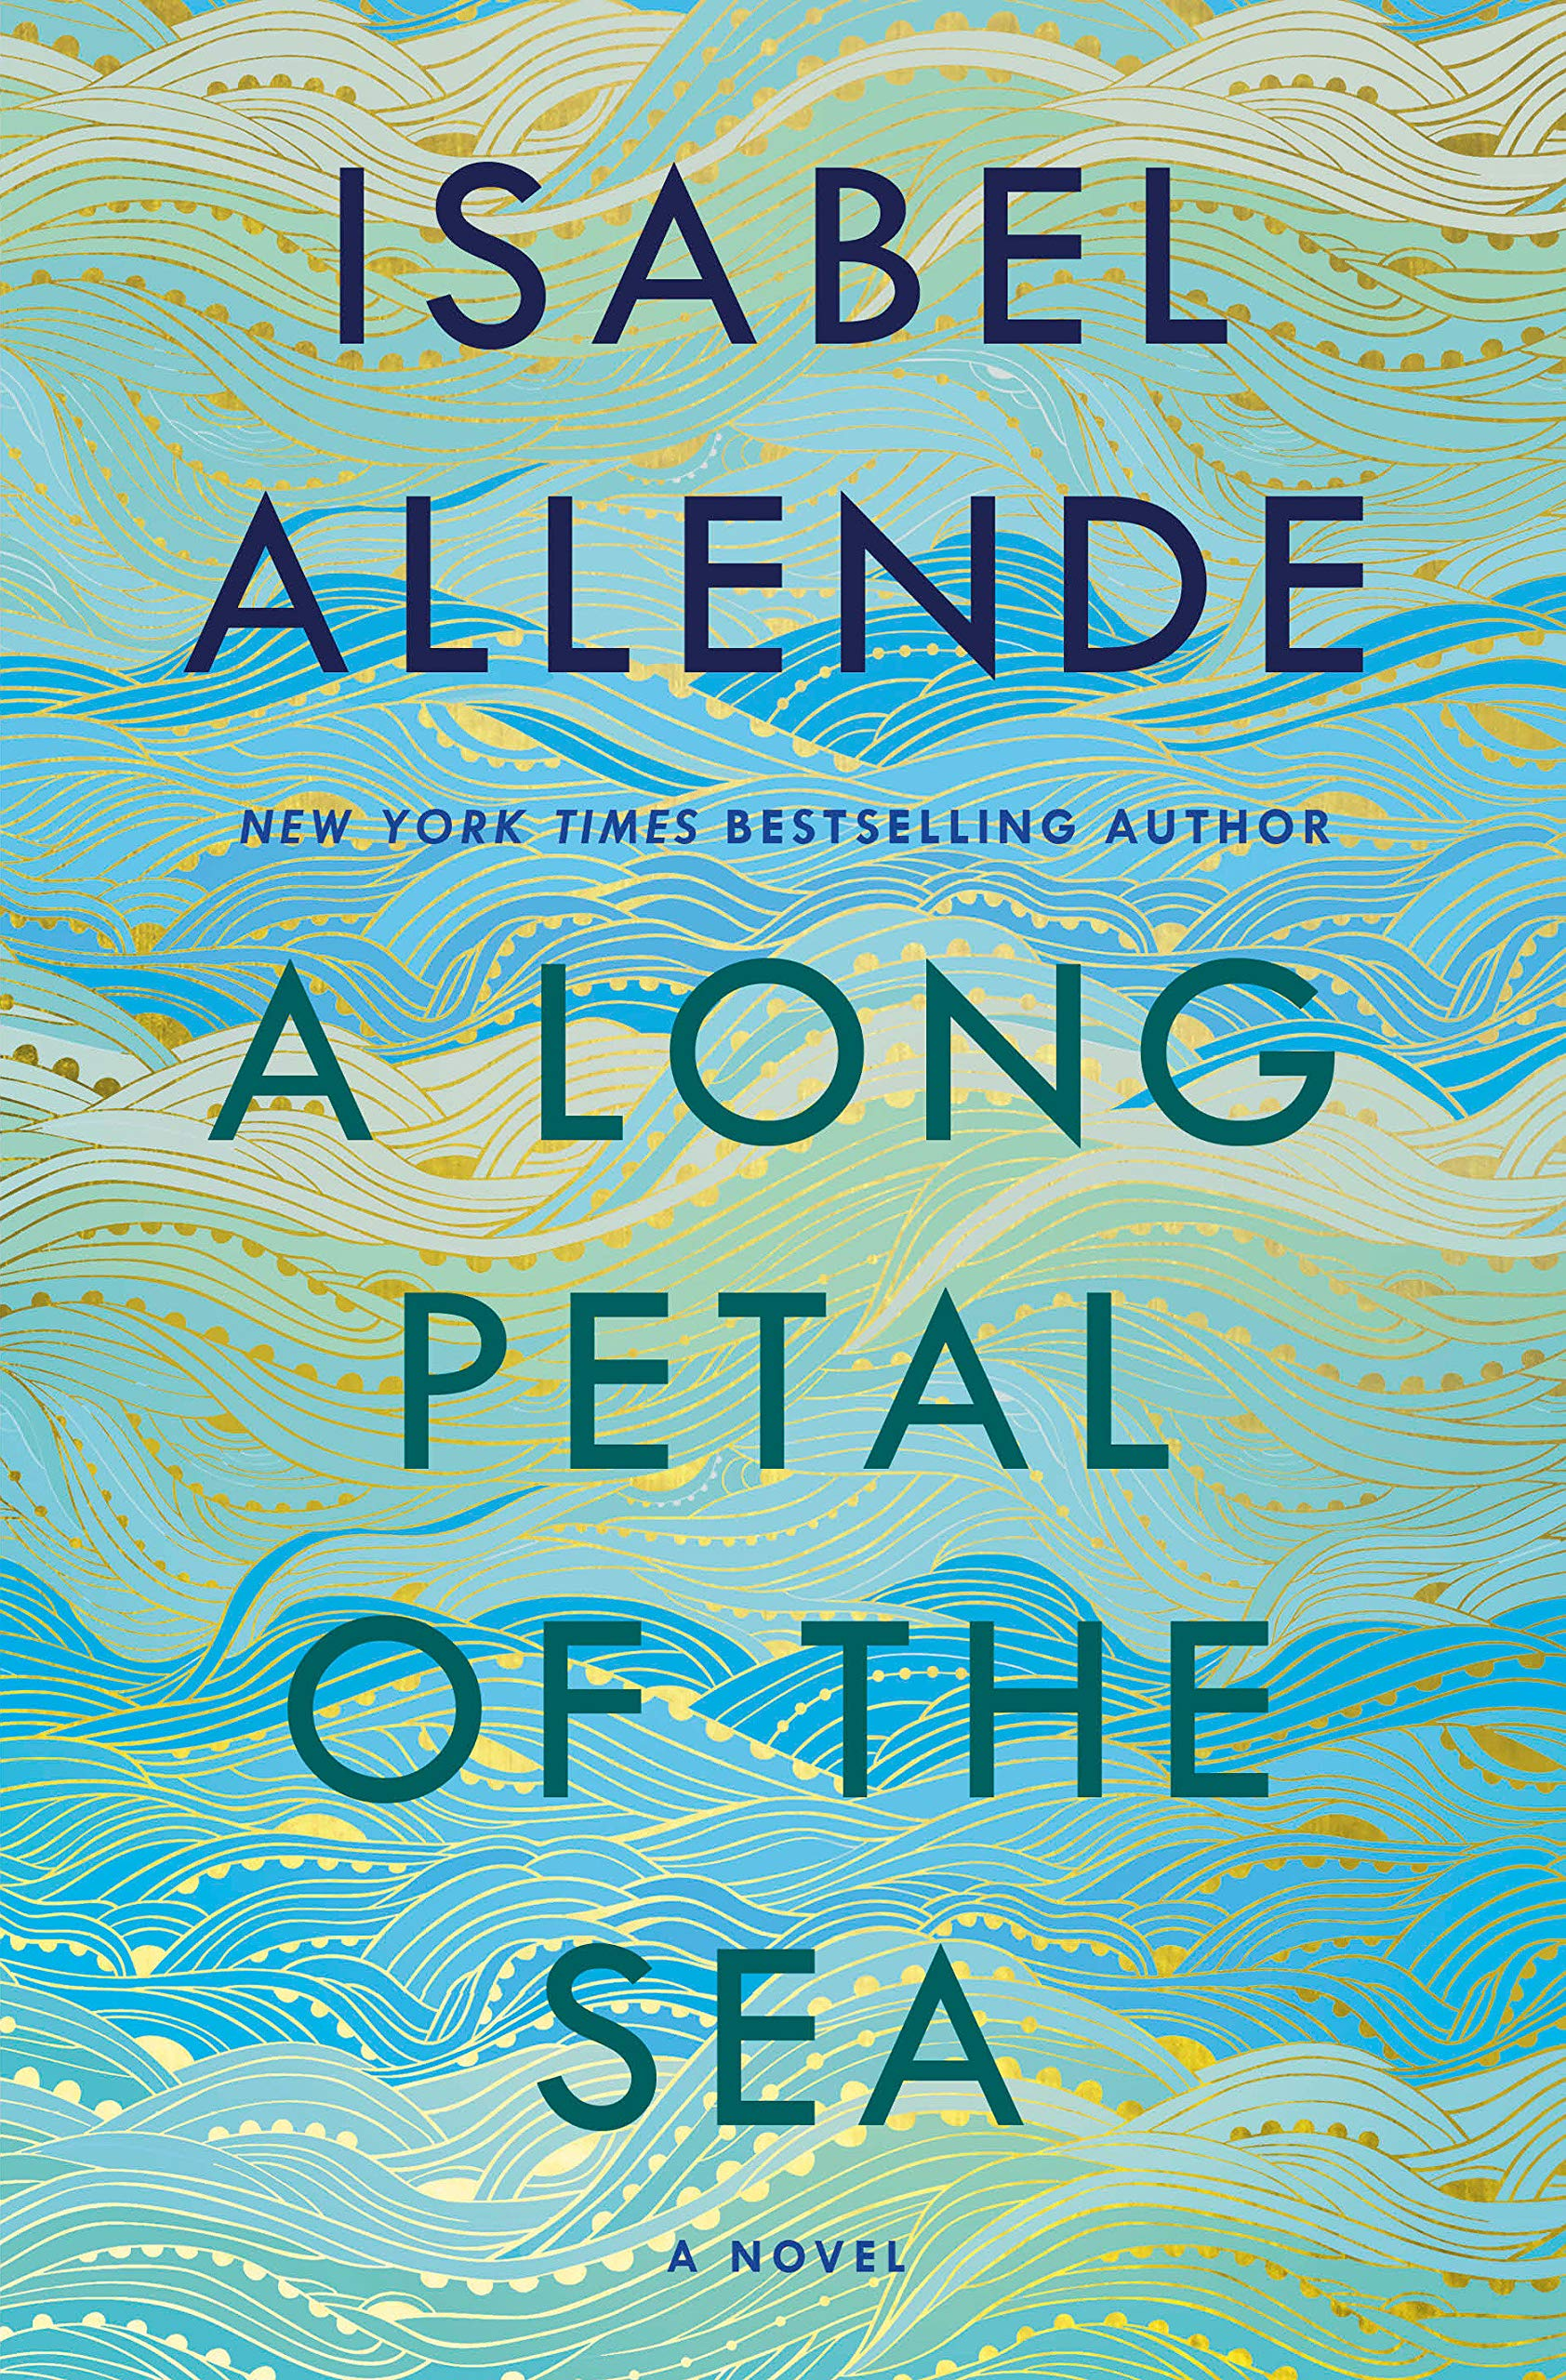 A Long Petal of the Sea: A Novel: Allende, Isabel, Caistor, Nick, Hopkinson, Amanda: 9781984820150: Amazon.com: Books